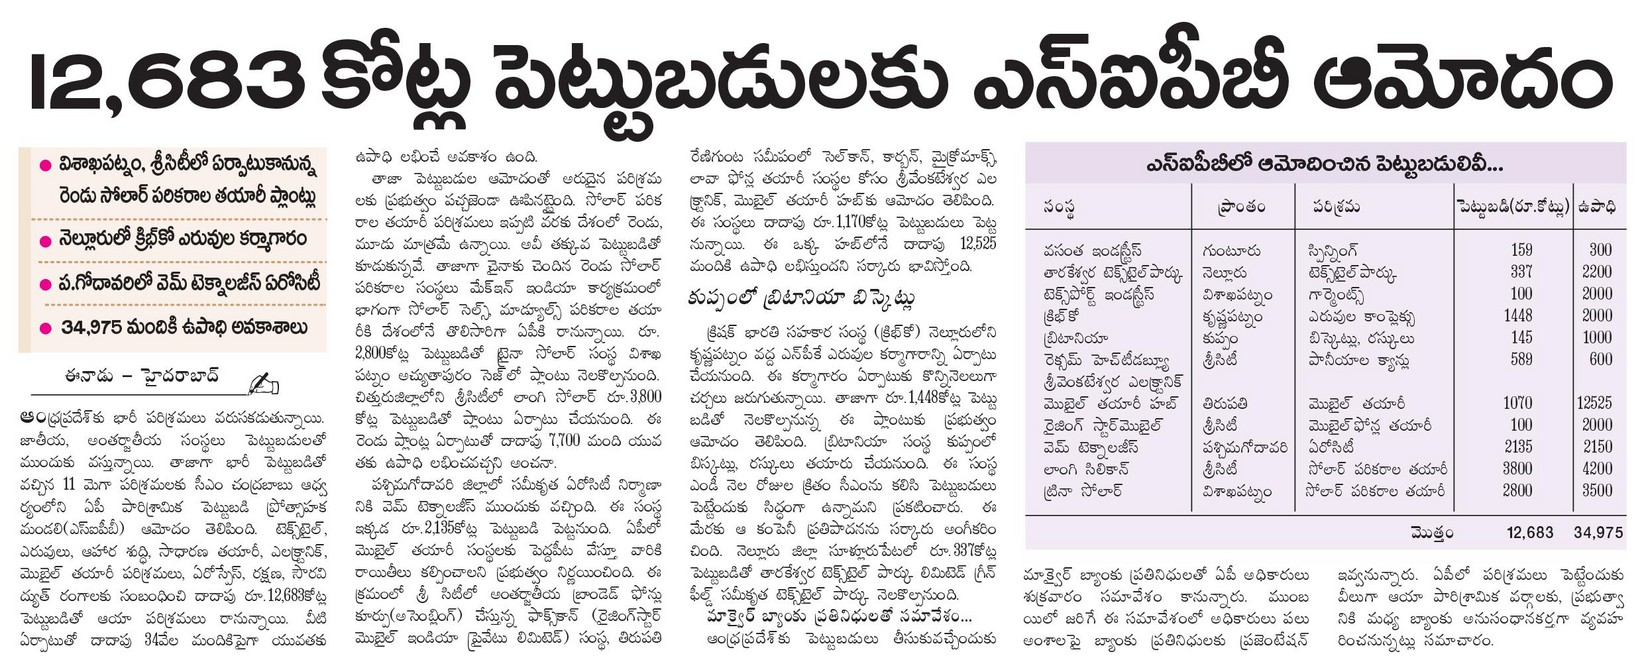 Heavy industries to come to Andhra Pradesh with 12,683 crores investments